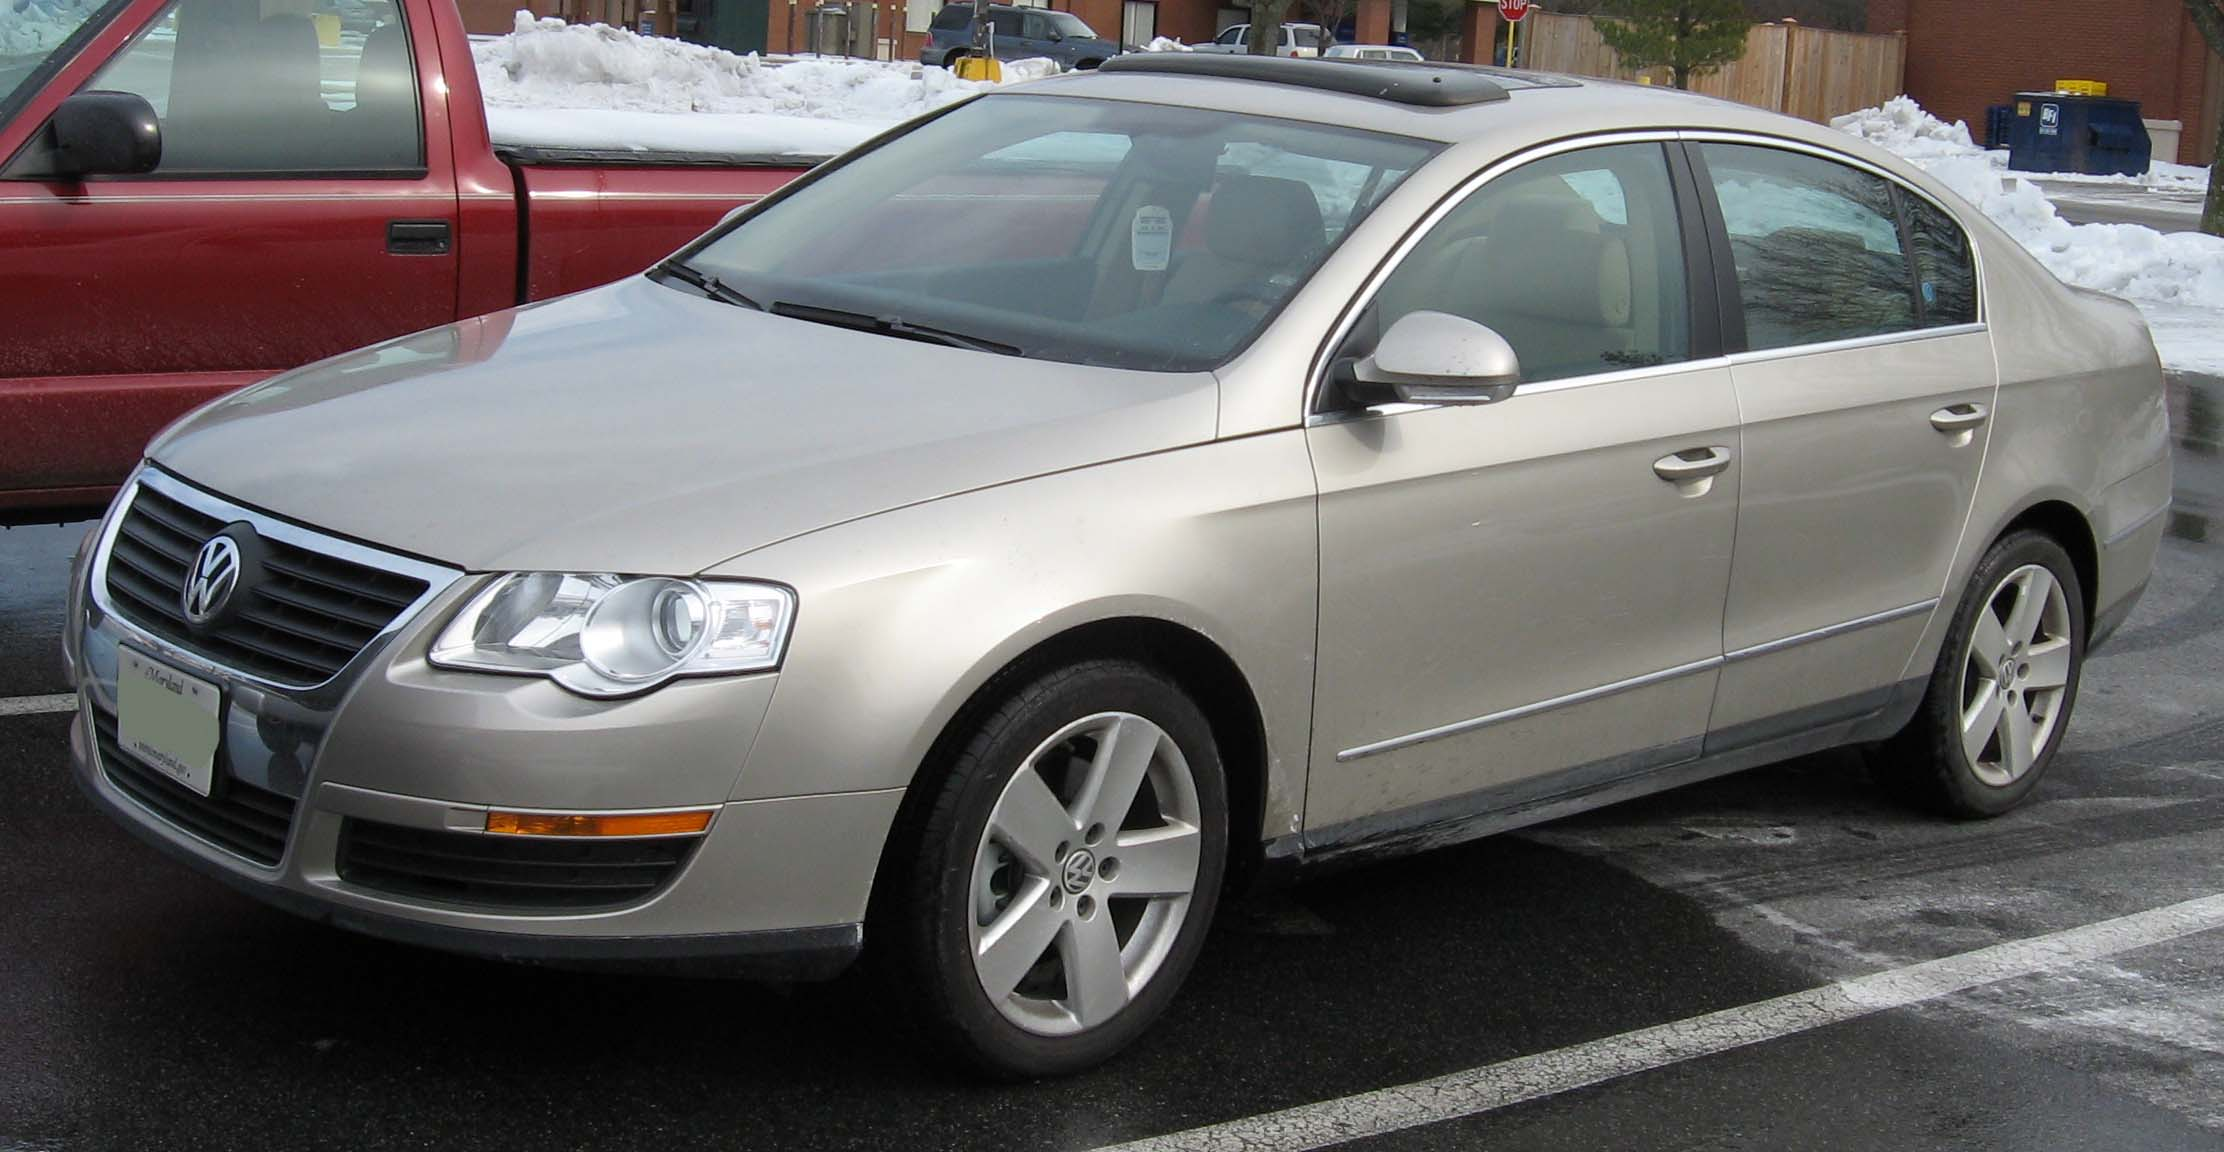 2006 volkswagen passat information and photos momentcar. Black Bedroom Furniture Sets. Home Design Ideas